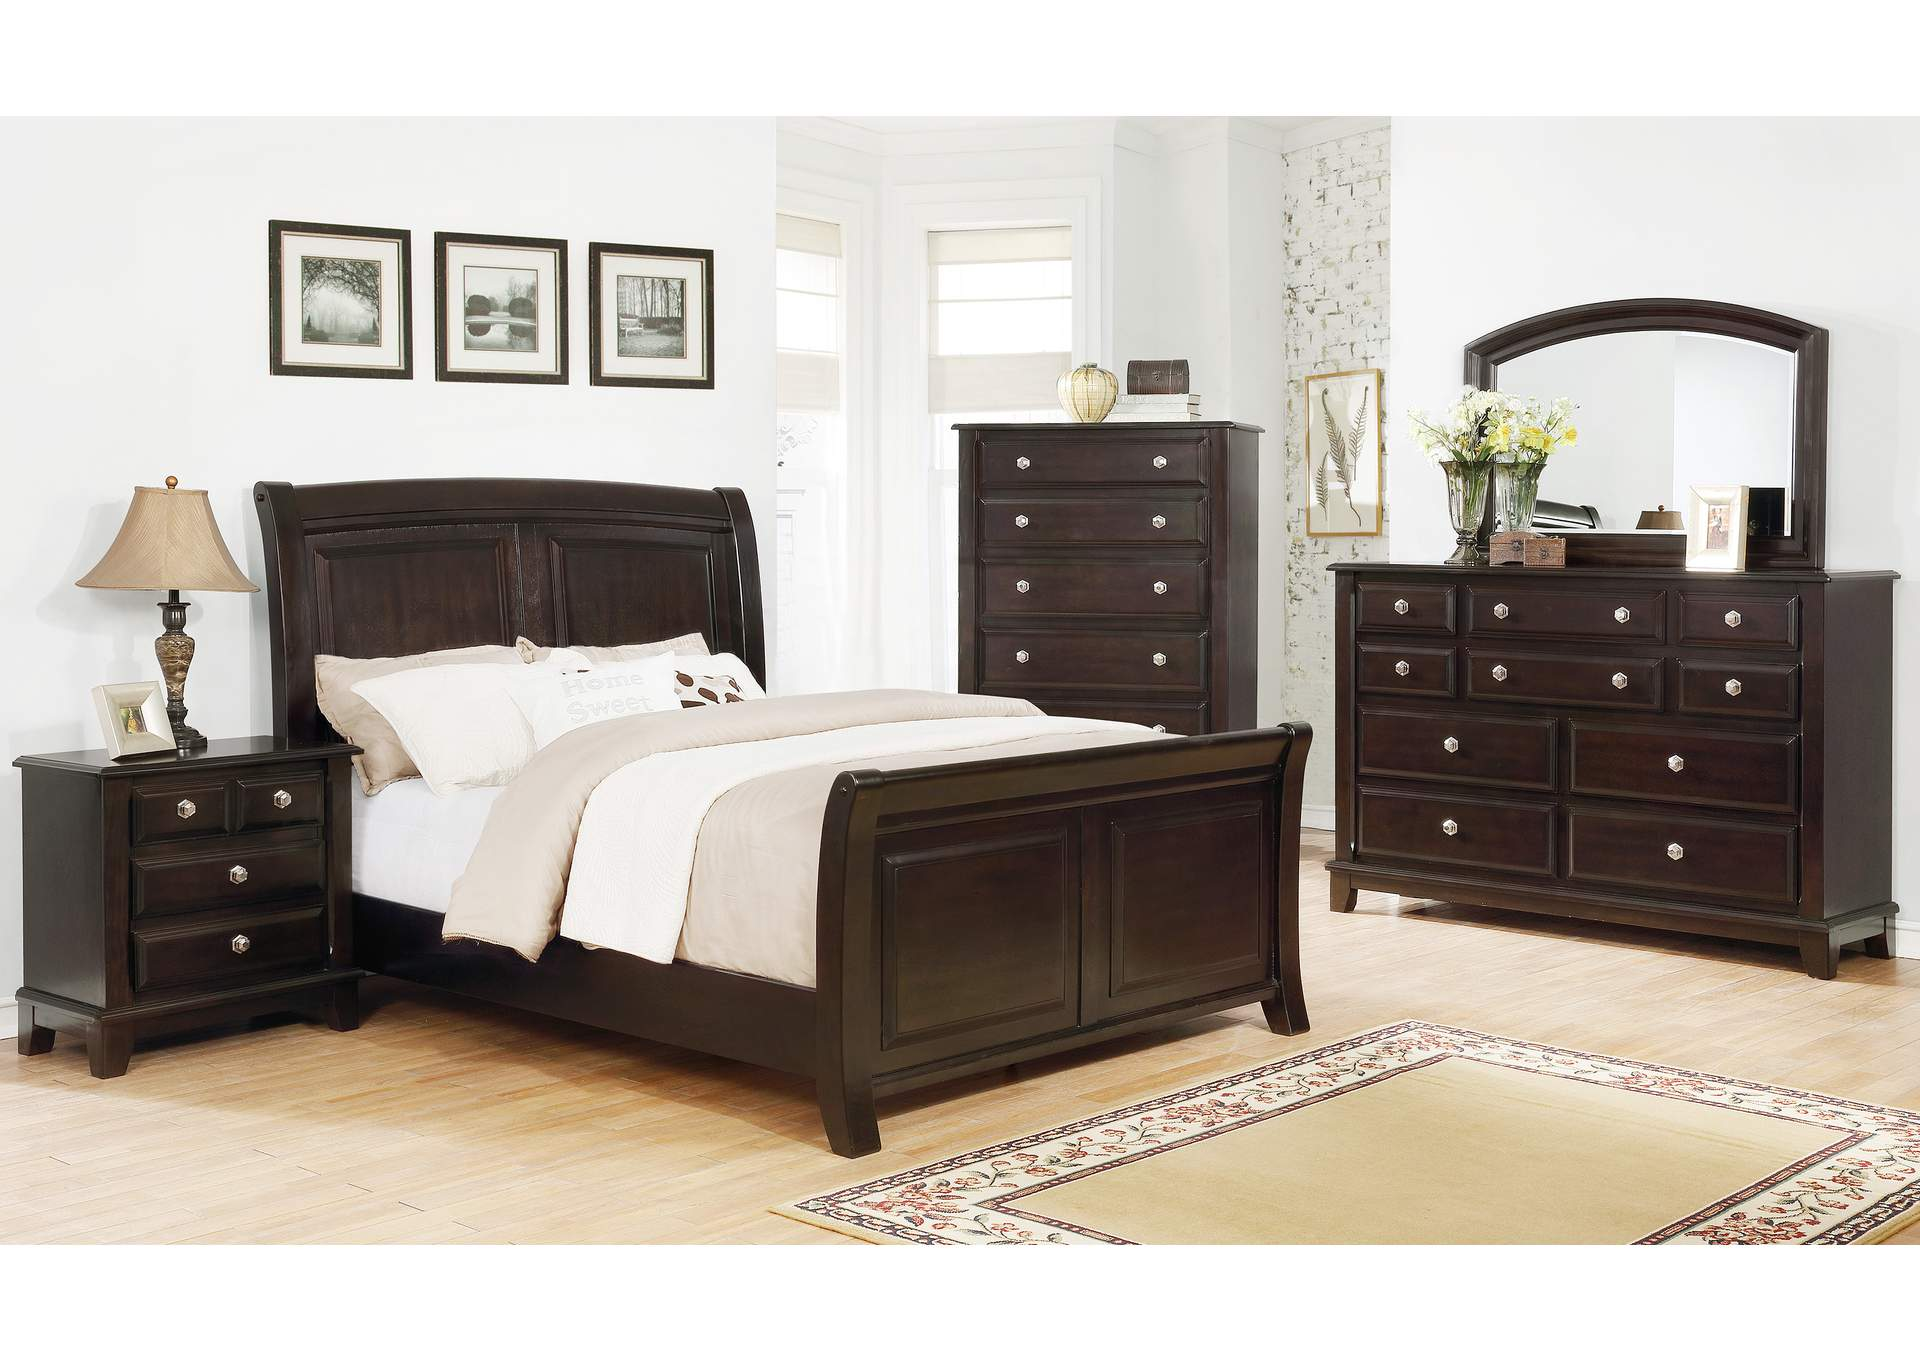 Kenton Dark Brown Dresser,Crown Mark